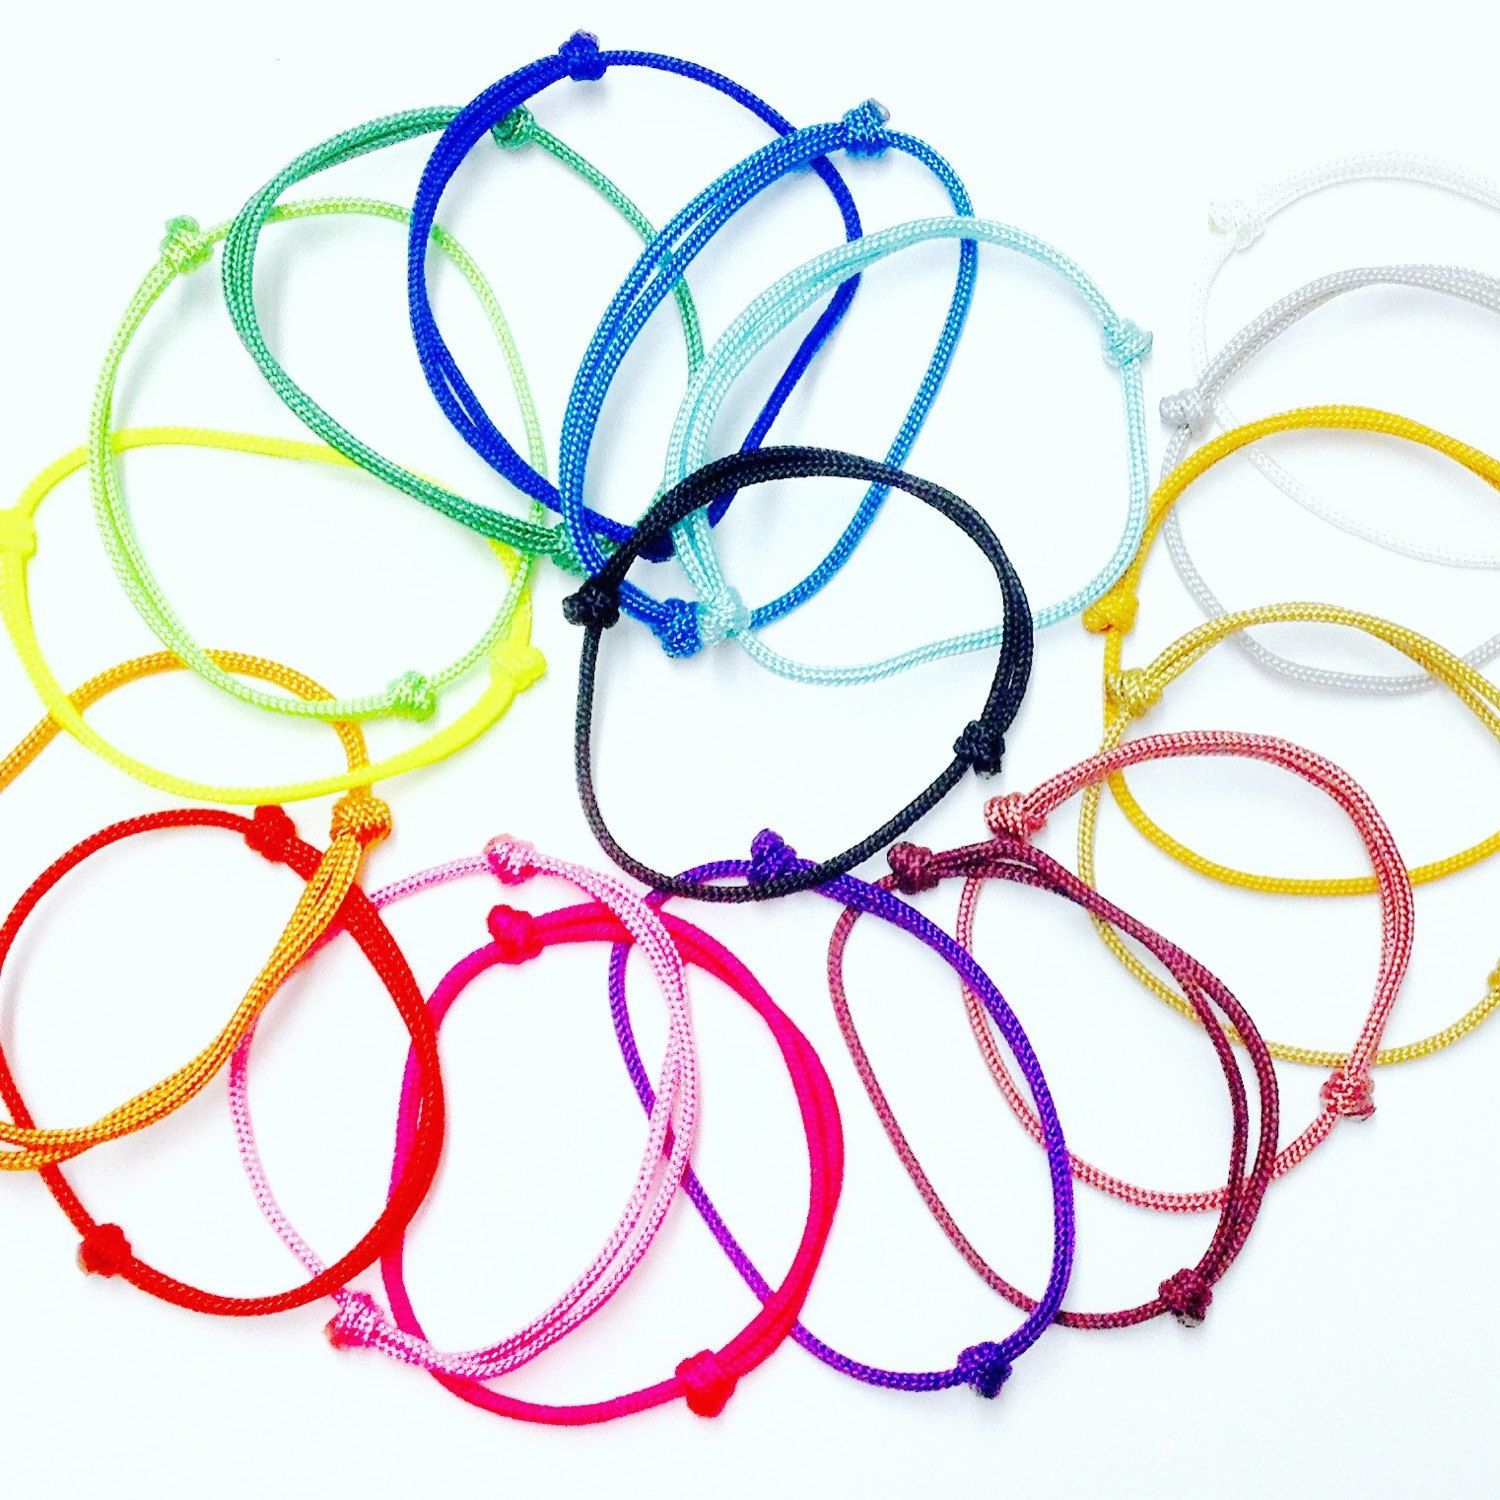 New String Bracelets!!! Made withb Paracord 95 in 18 different colors and 15 different sizes! Get the color you want!